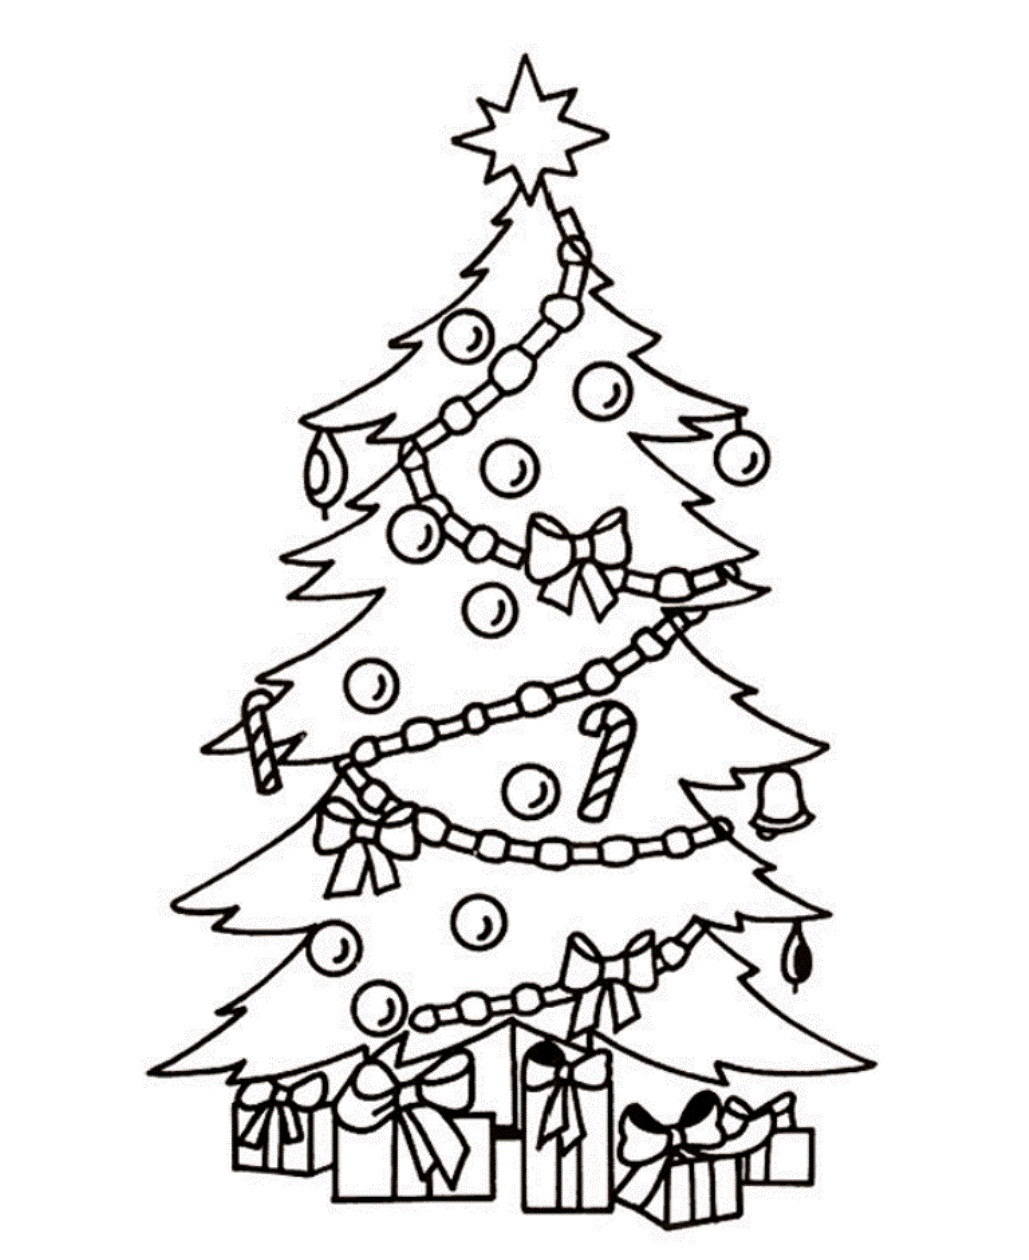 Free Christmas Tree Clip Art Black And White, Download Free Clip Art.